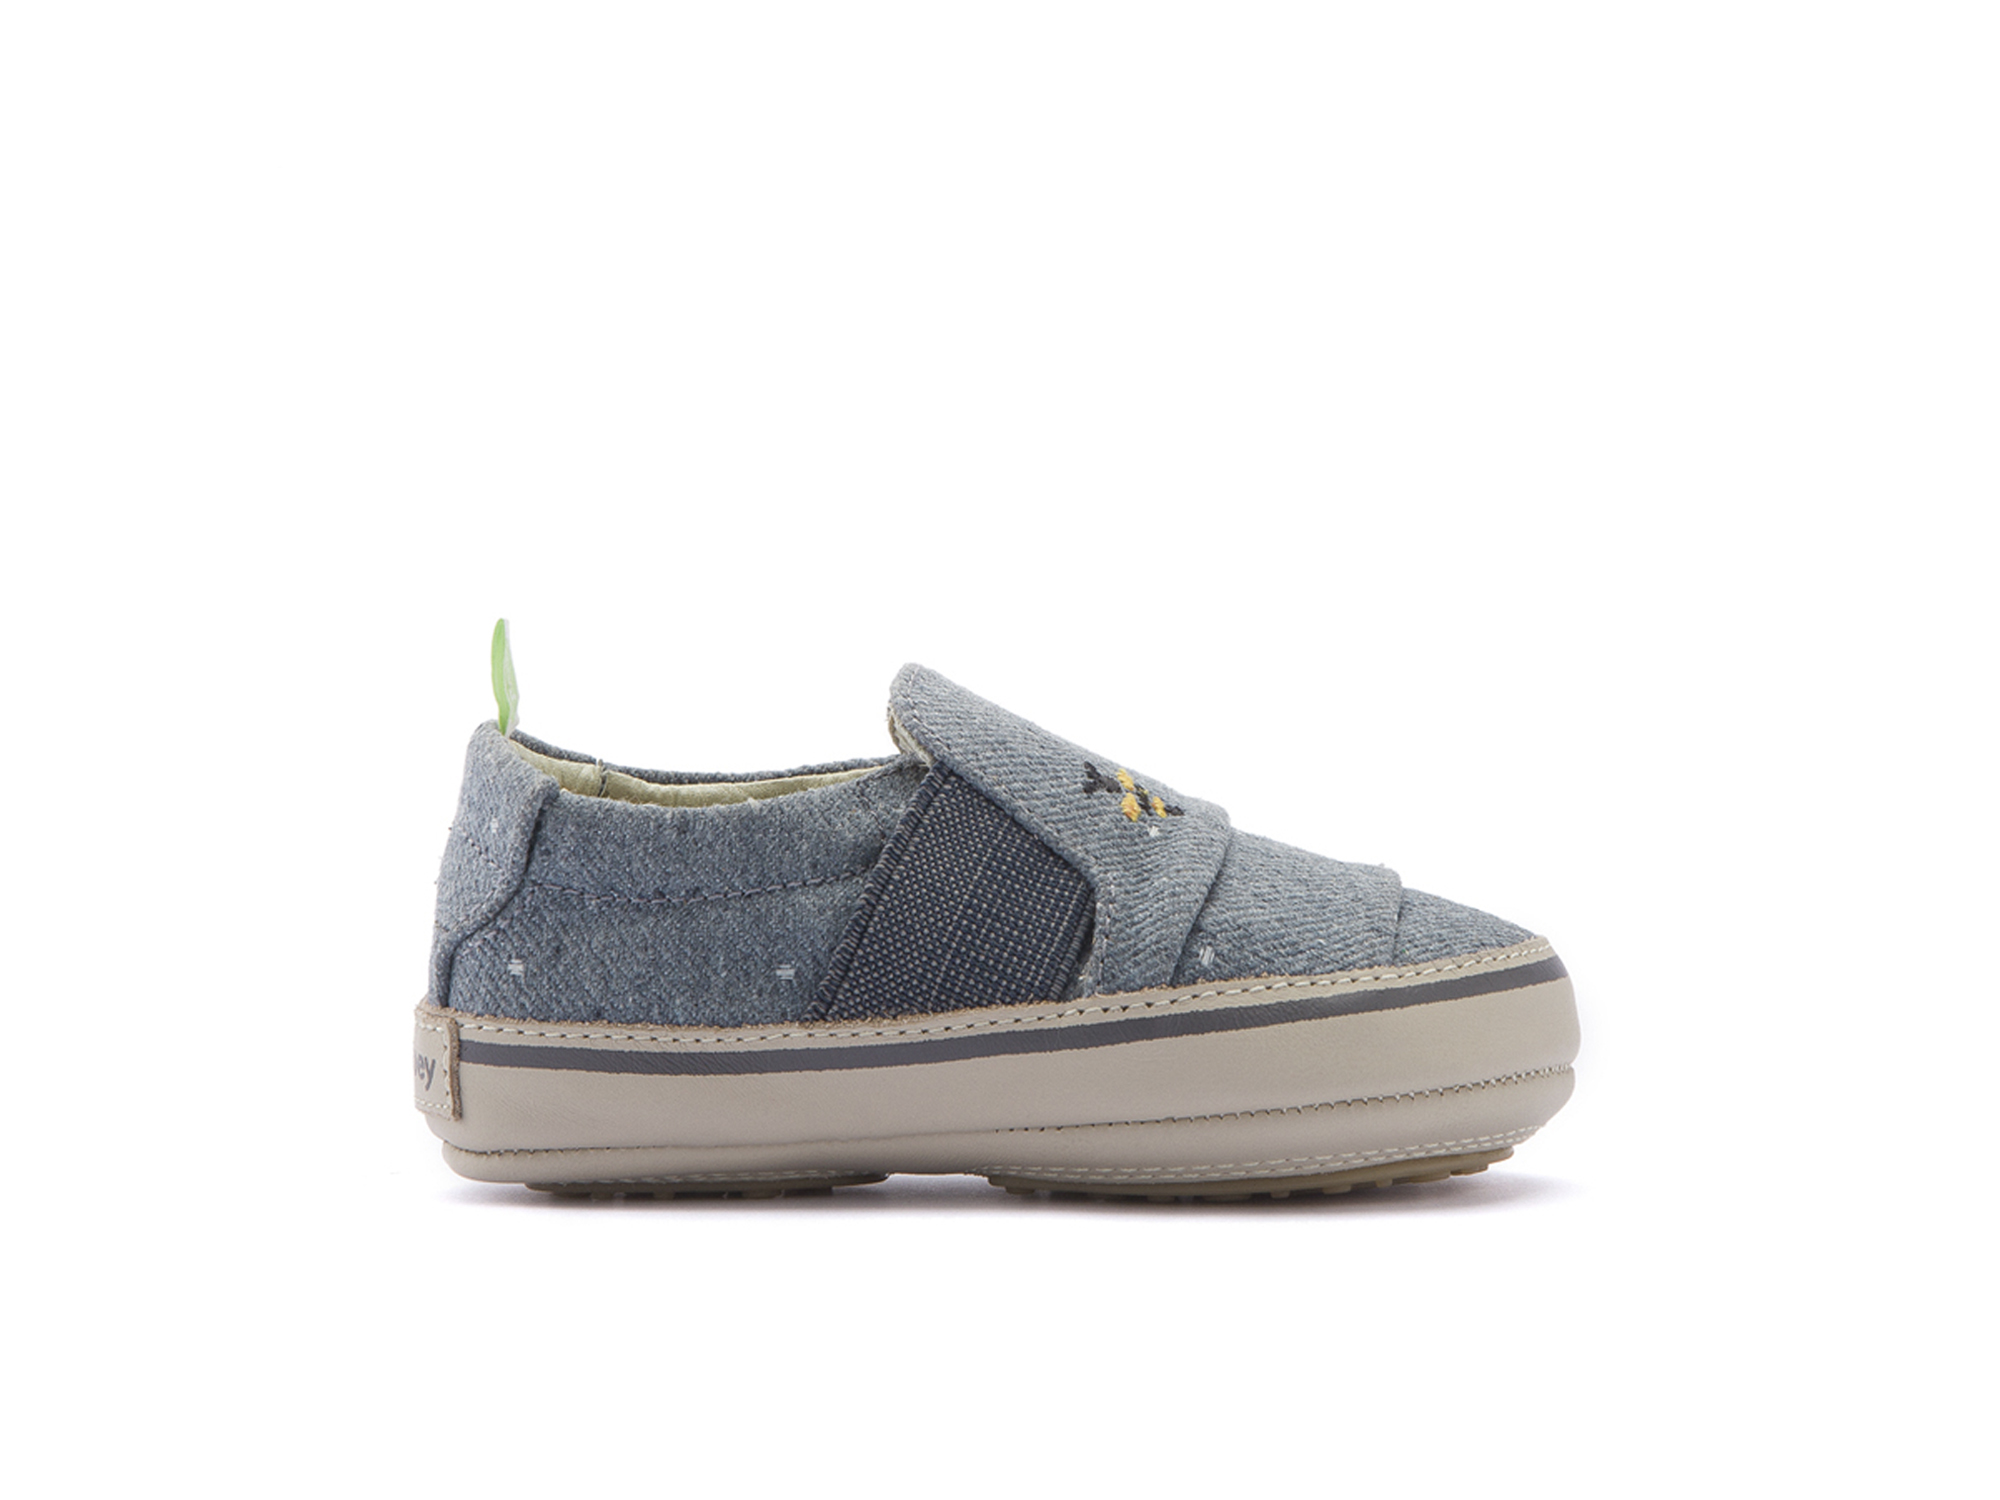 Tênis Slippy Bluish Space Canvas Beeswax/ Pumice Baby 0 à 2 anos - 1